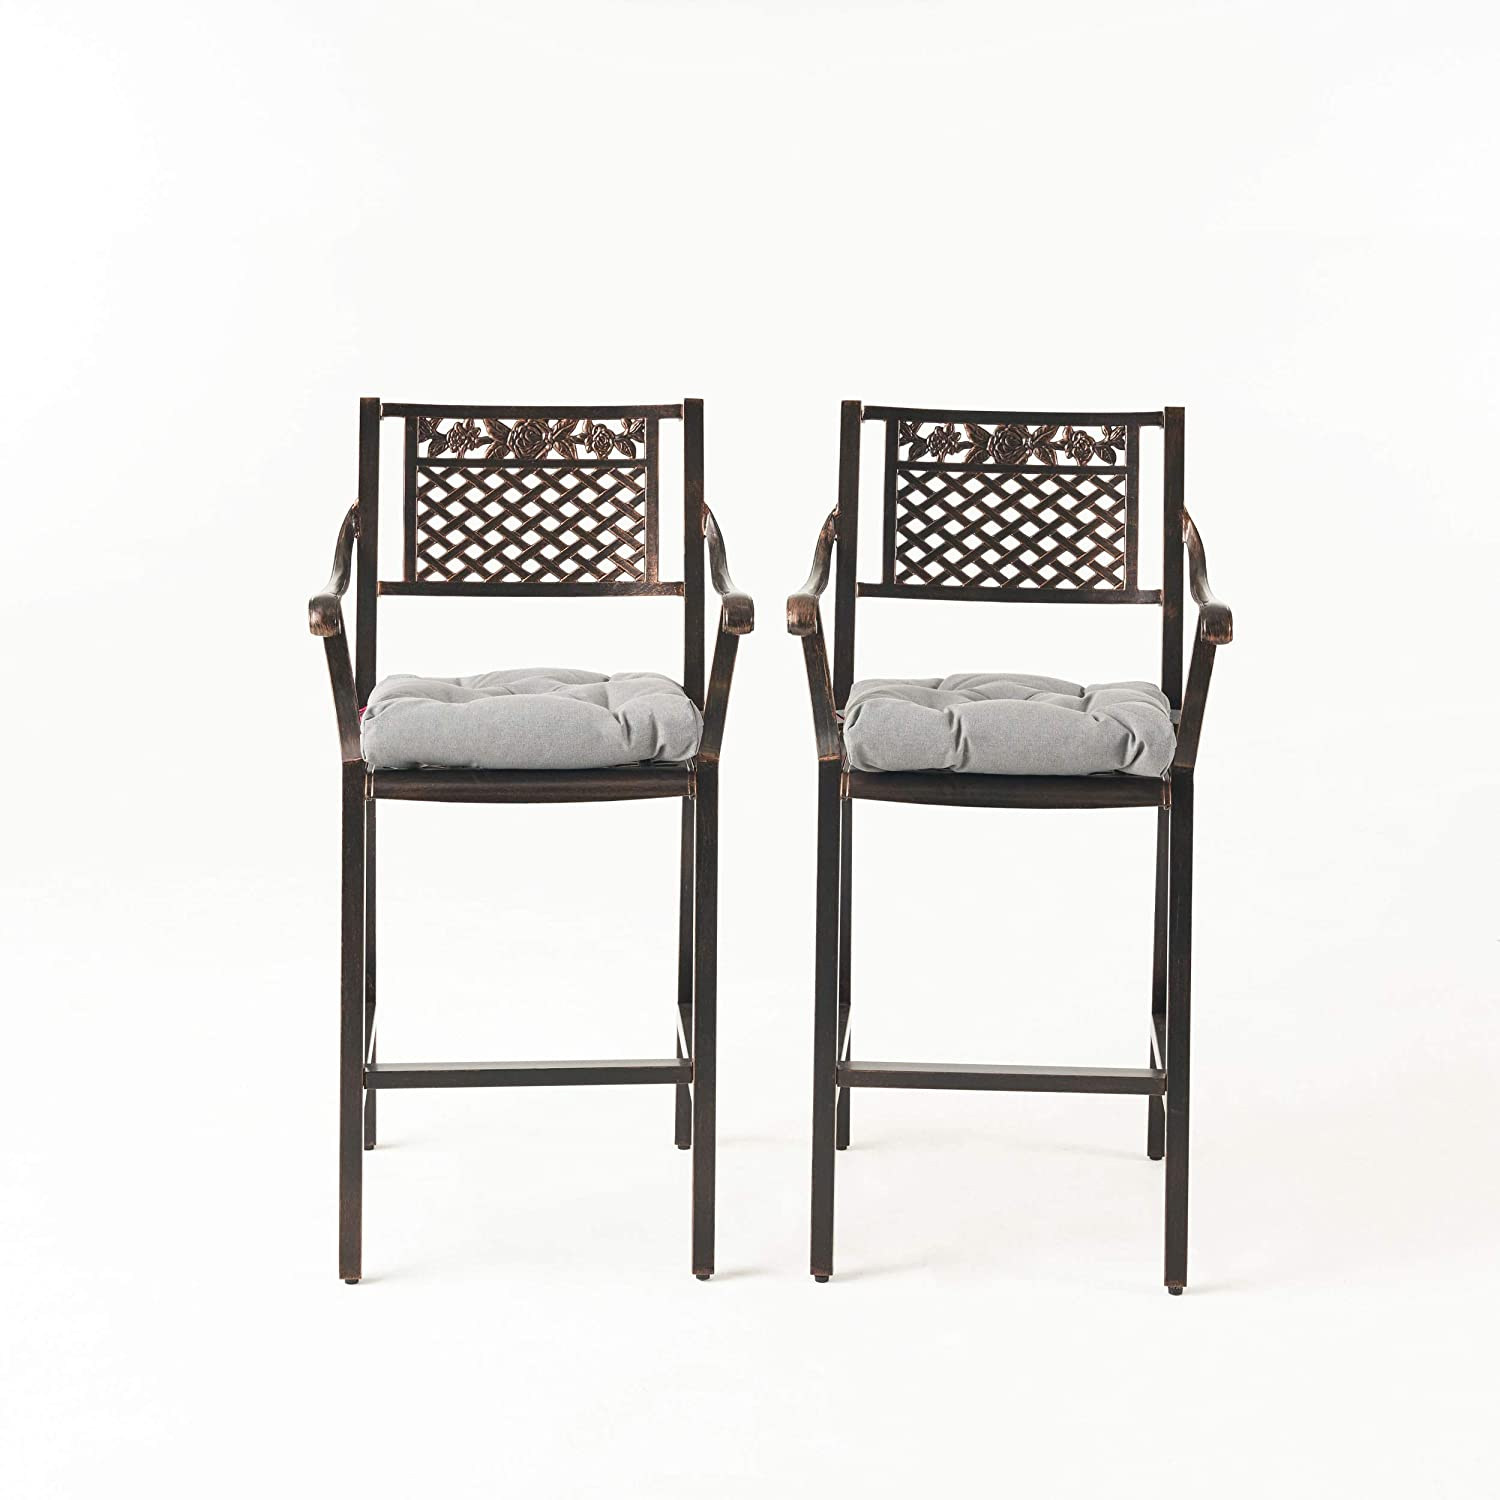 Great Deal Furniture Emily Outdoor Barstool with Cushion (Set of 2), Shiny Copper and Charcoal